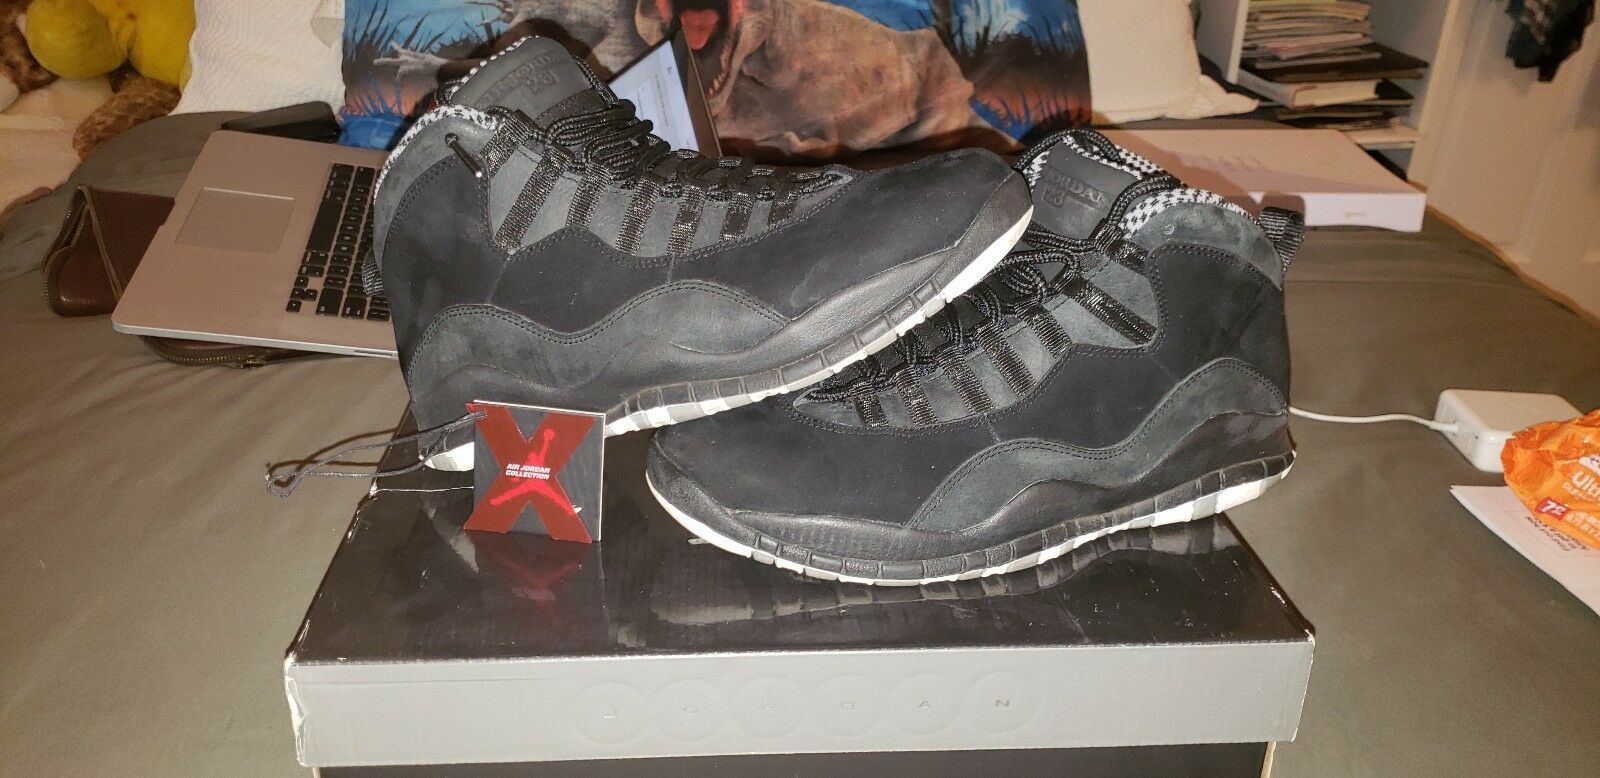 Nike Air Jordan 10 stealth size 8.5 New shoes for men and women, limited time discount